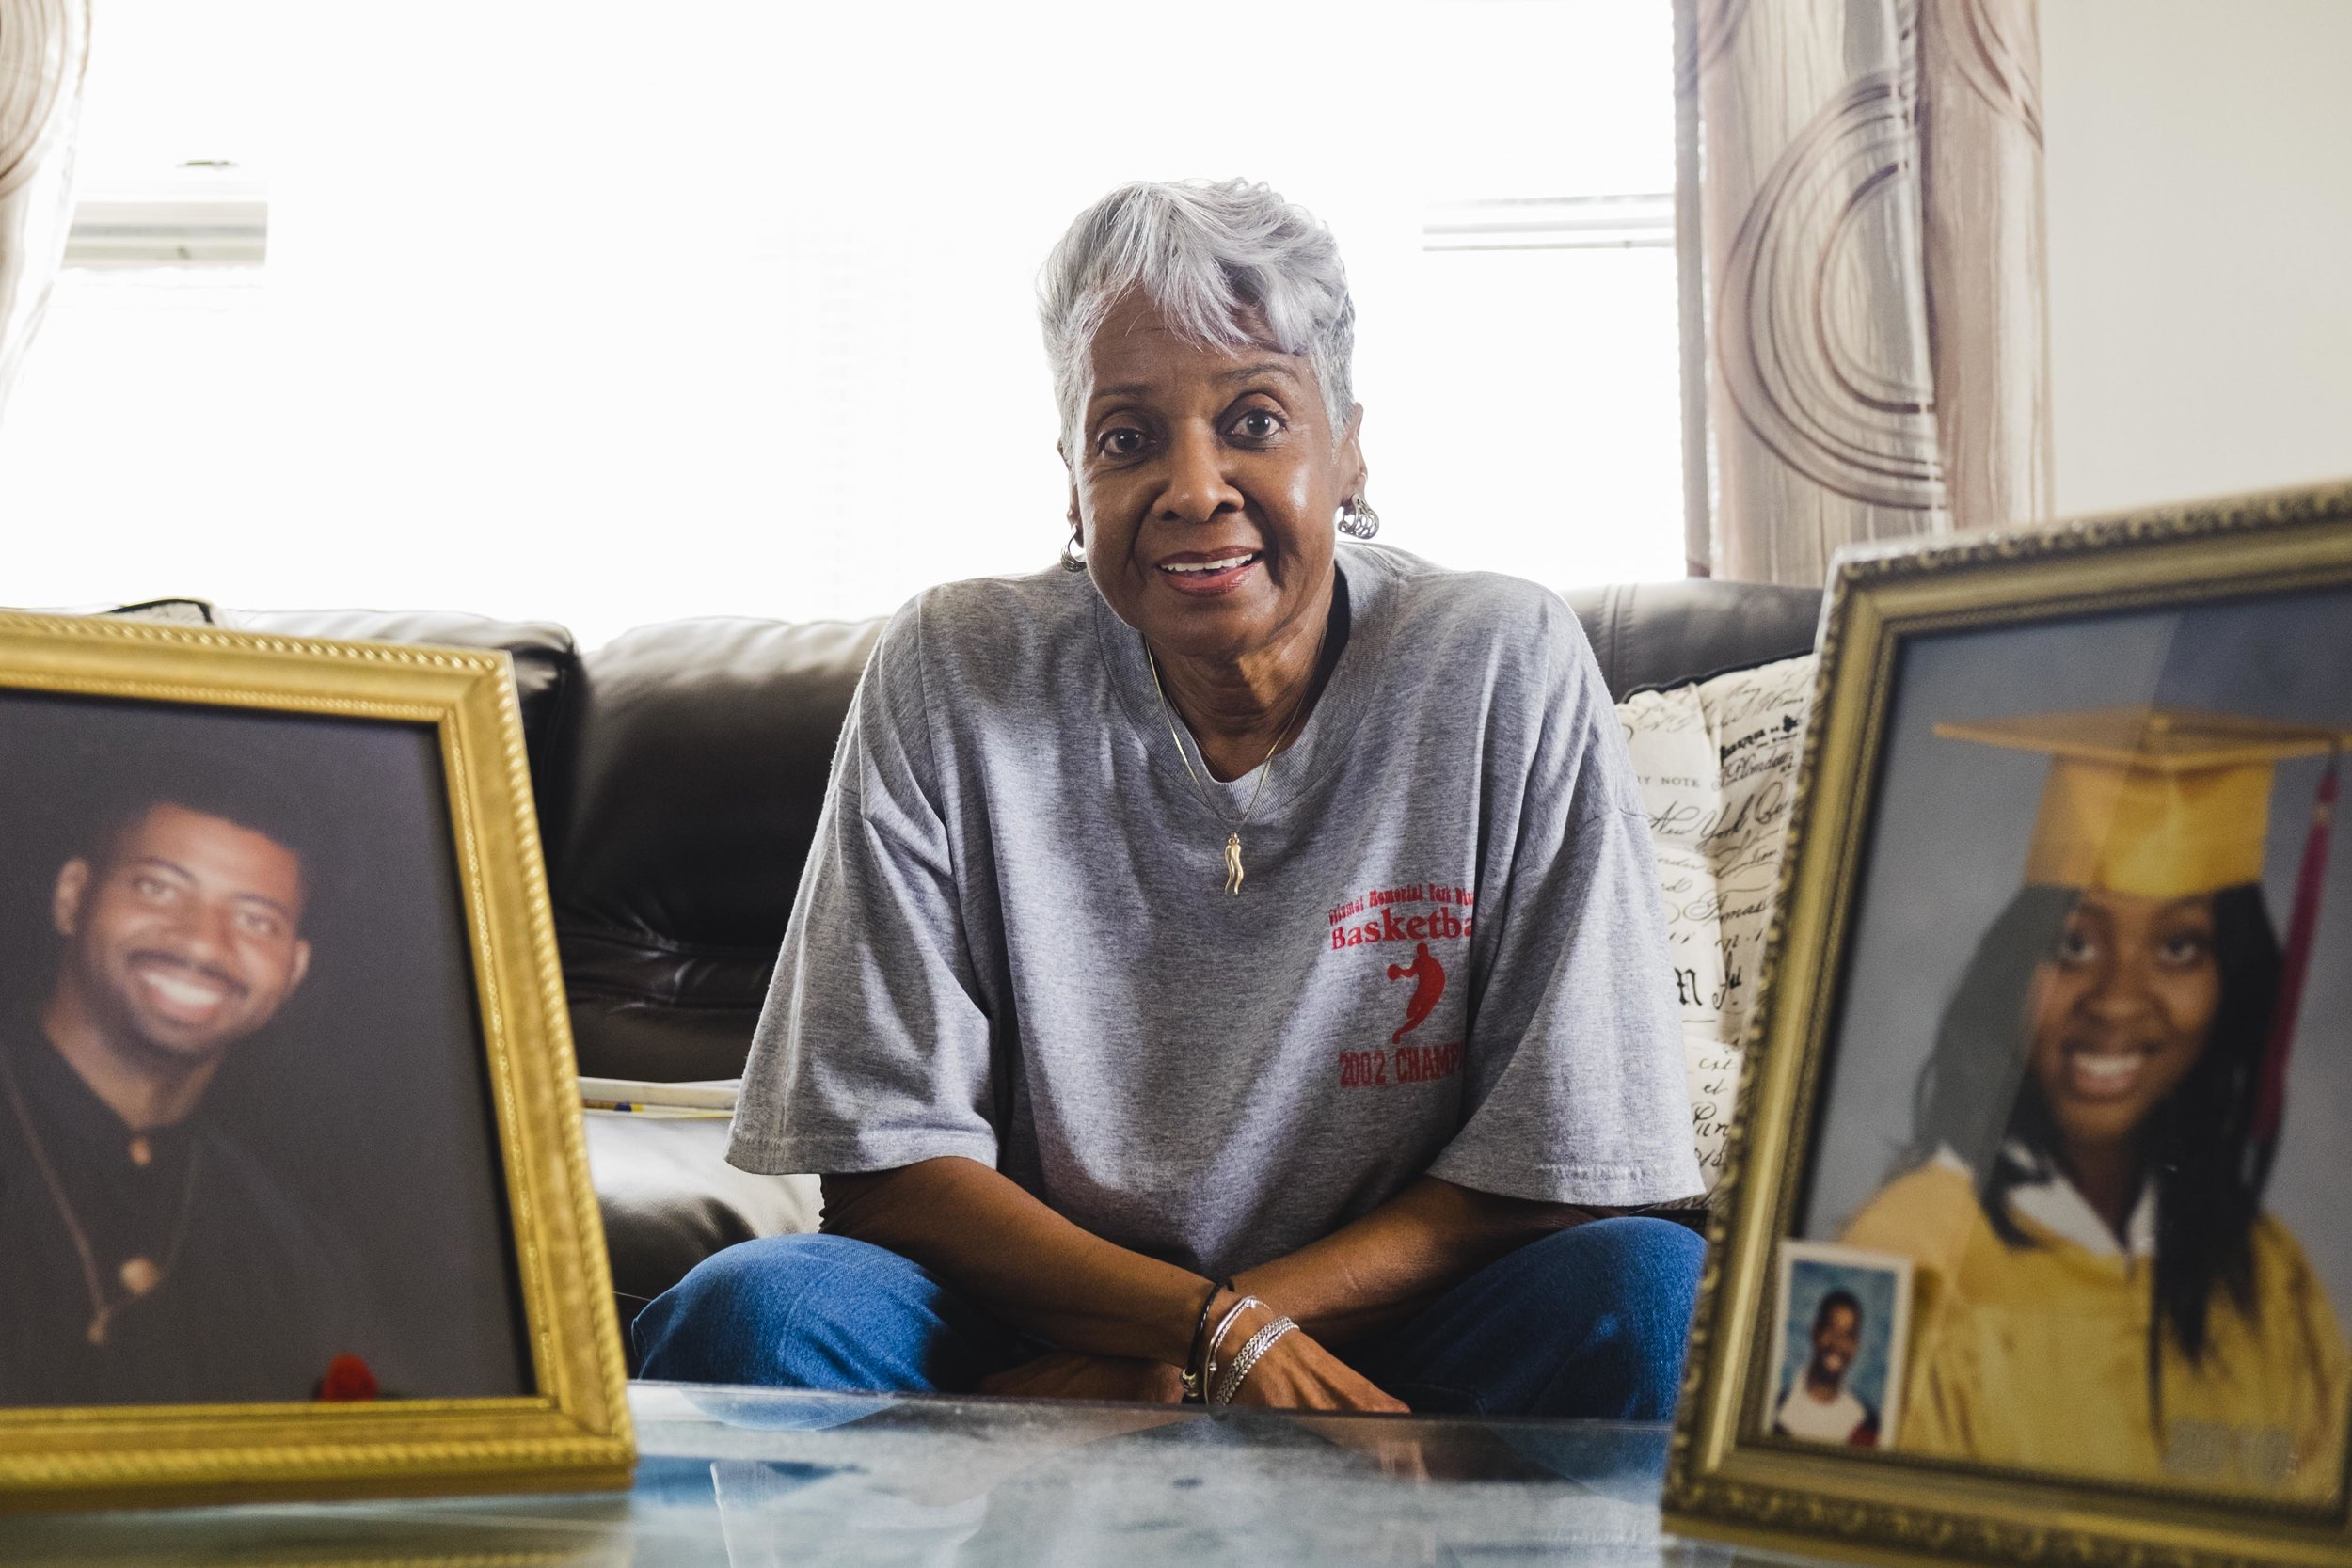 "Eva Early, 73, lives alone in a senior building in Auburn Gresham. A framed photo of her granddaughter and late son are displayed prominently on her living room's center table. The frames normally face the couch. ""they here with me so I could watch them and they watch me,"" said Early who said she is happy and content with her life even though she does not see her granddaughter often. ""I talk to them…I just look at the picture sometimes and I do, you know, wish he was here and then I look over there and say, there you are, you know. Hey granddaughter, you know…I know that if he was in here, he'd be seeing 'bout his momma, you know. That's it. That's what makes me serious, kinda old and sometimes lonesome. He's not here."""